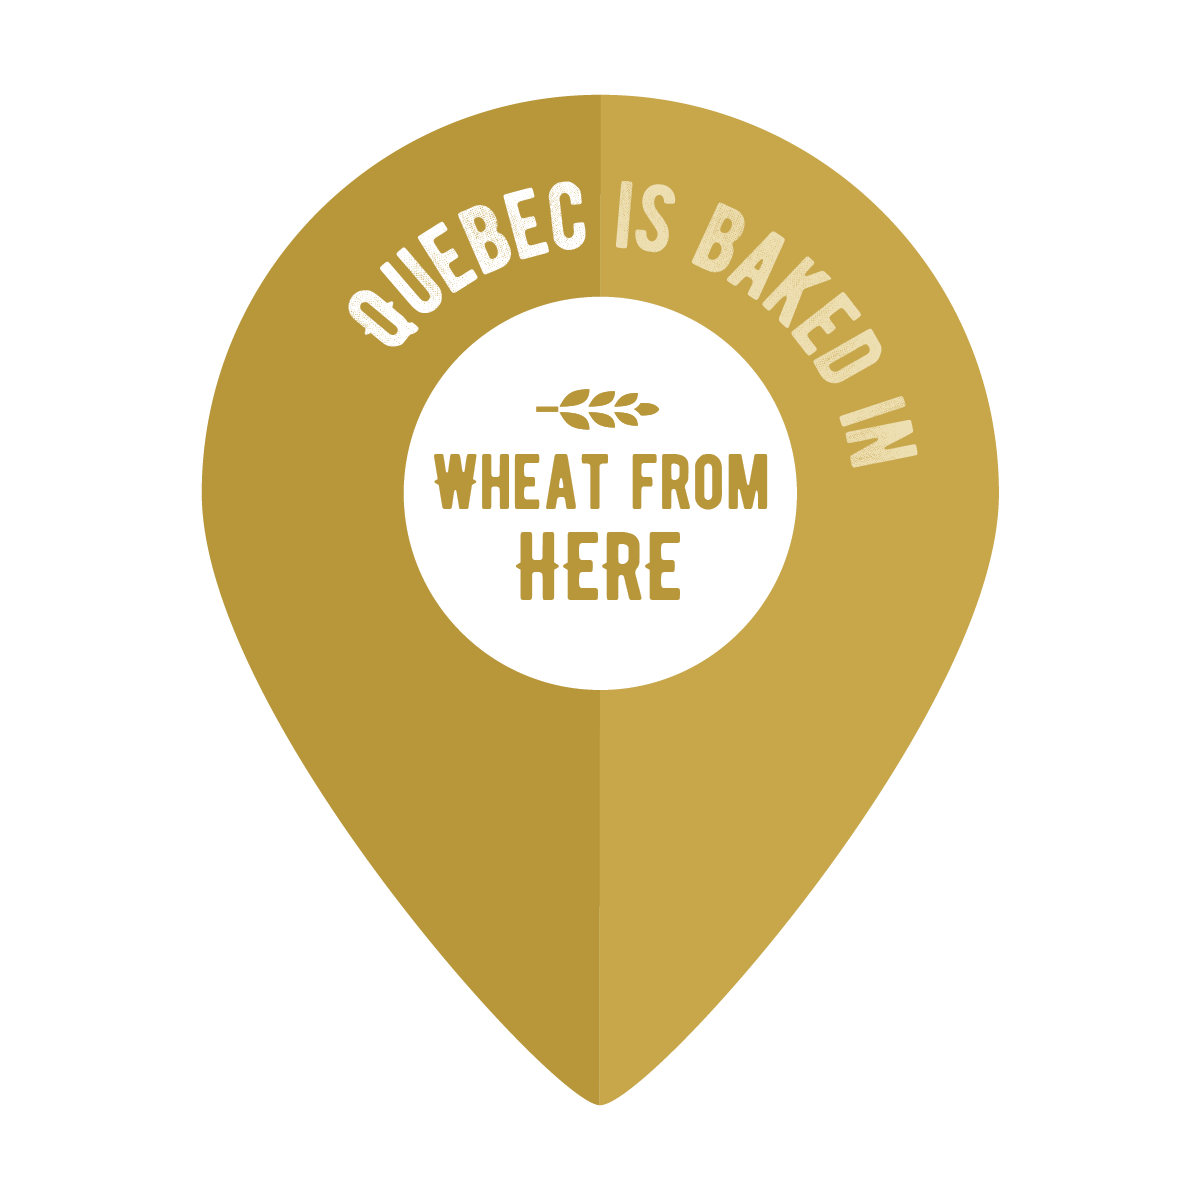 Wheat from here